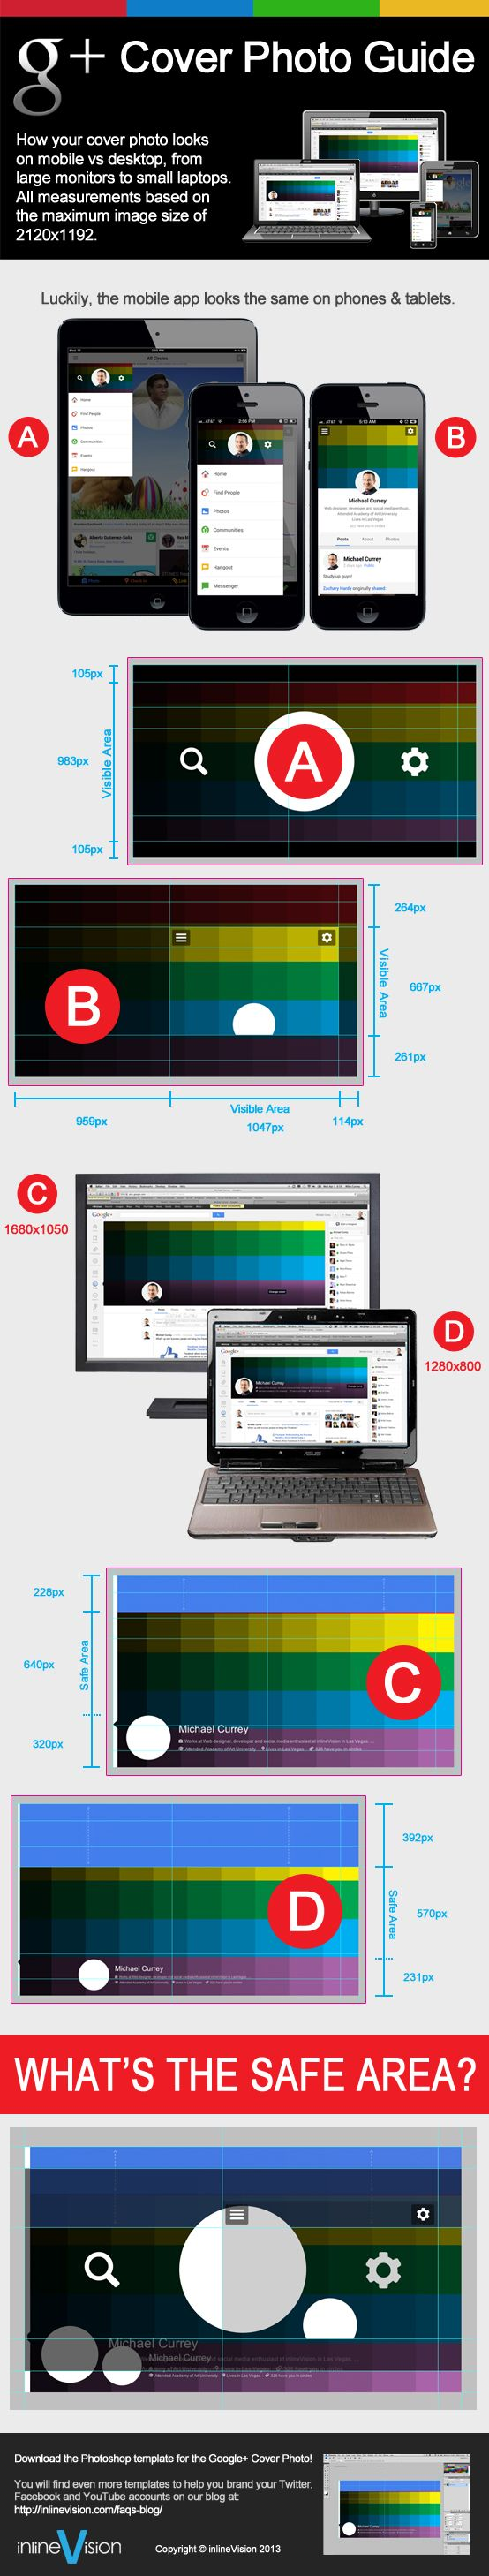 Google+ Cover Photo Guide - On the desktop, depending on the size of your screen you will only see the bottom two-thirds or so of the image. You have to scroll up to see the entire image. Kinda weird, right?